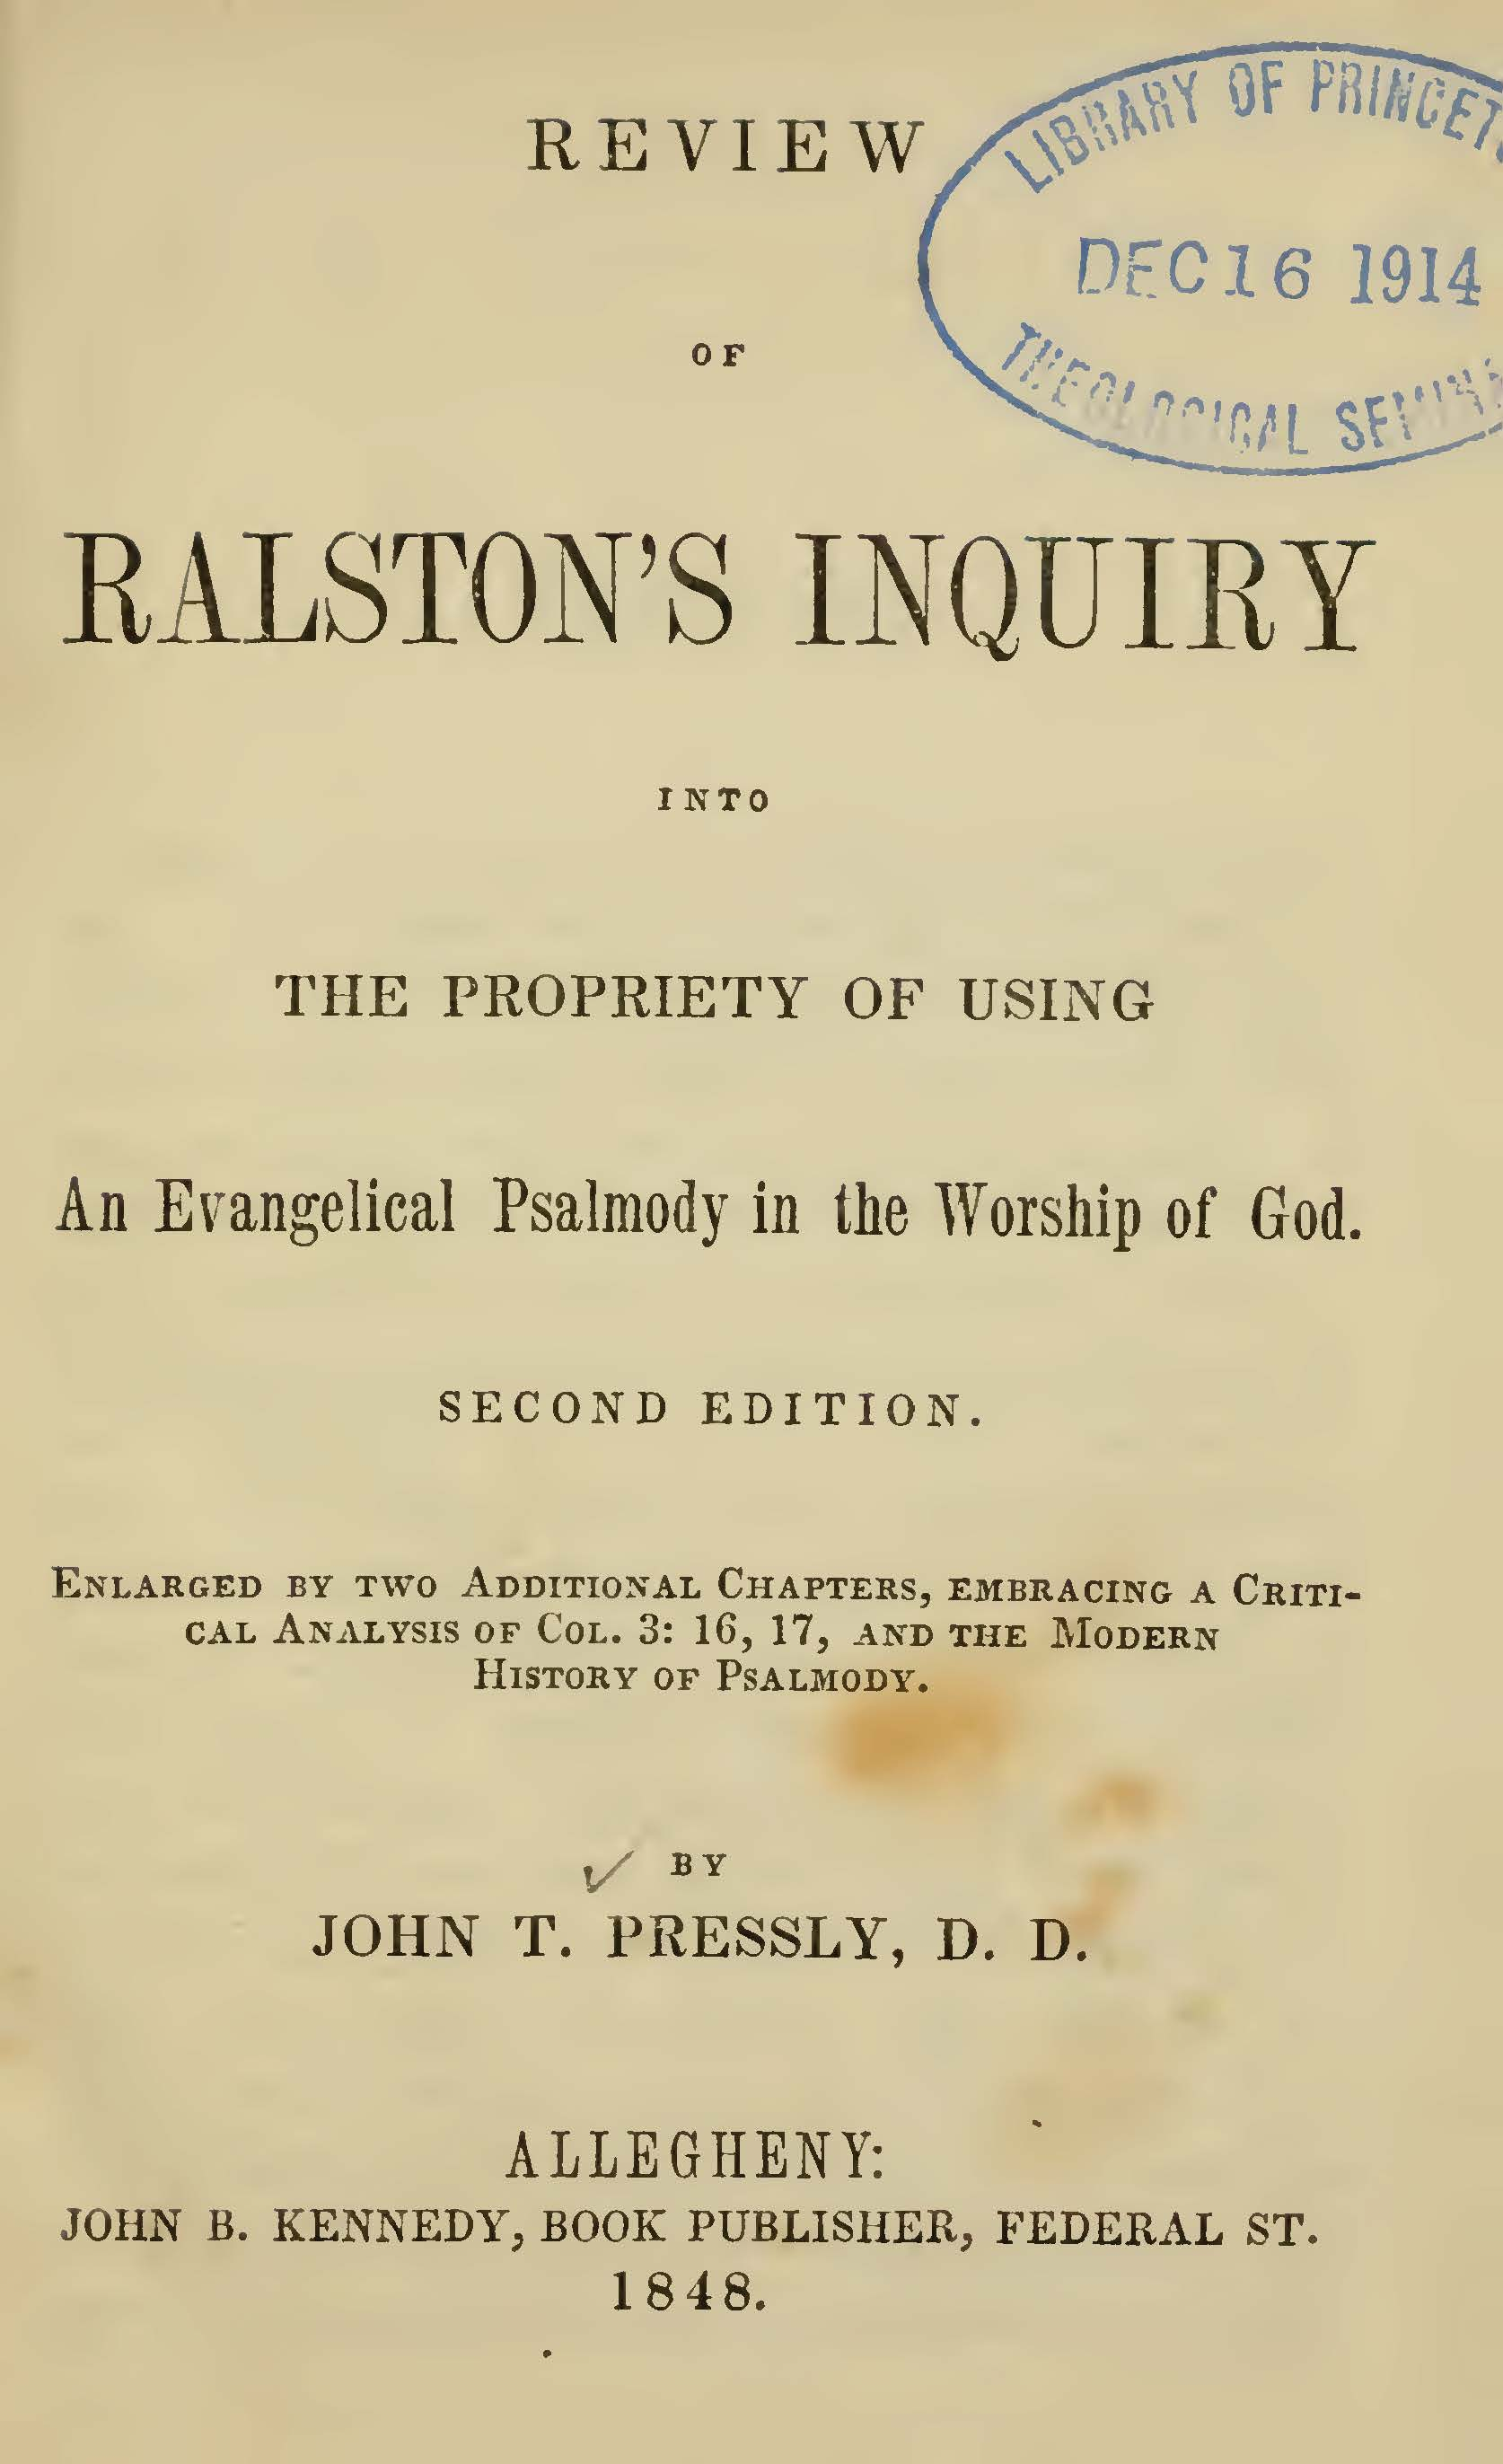 Pressly, John Taylor, Review of Ralstons Inquiry Title Page.jpg